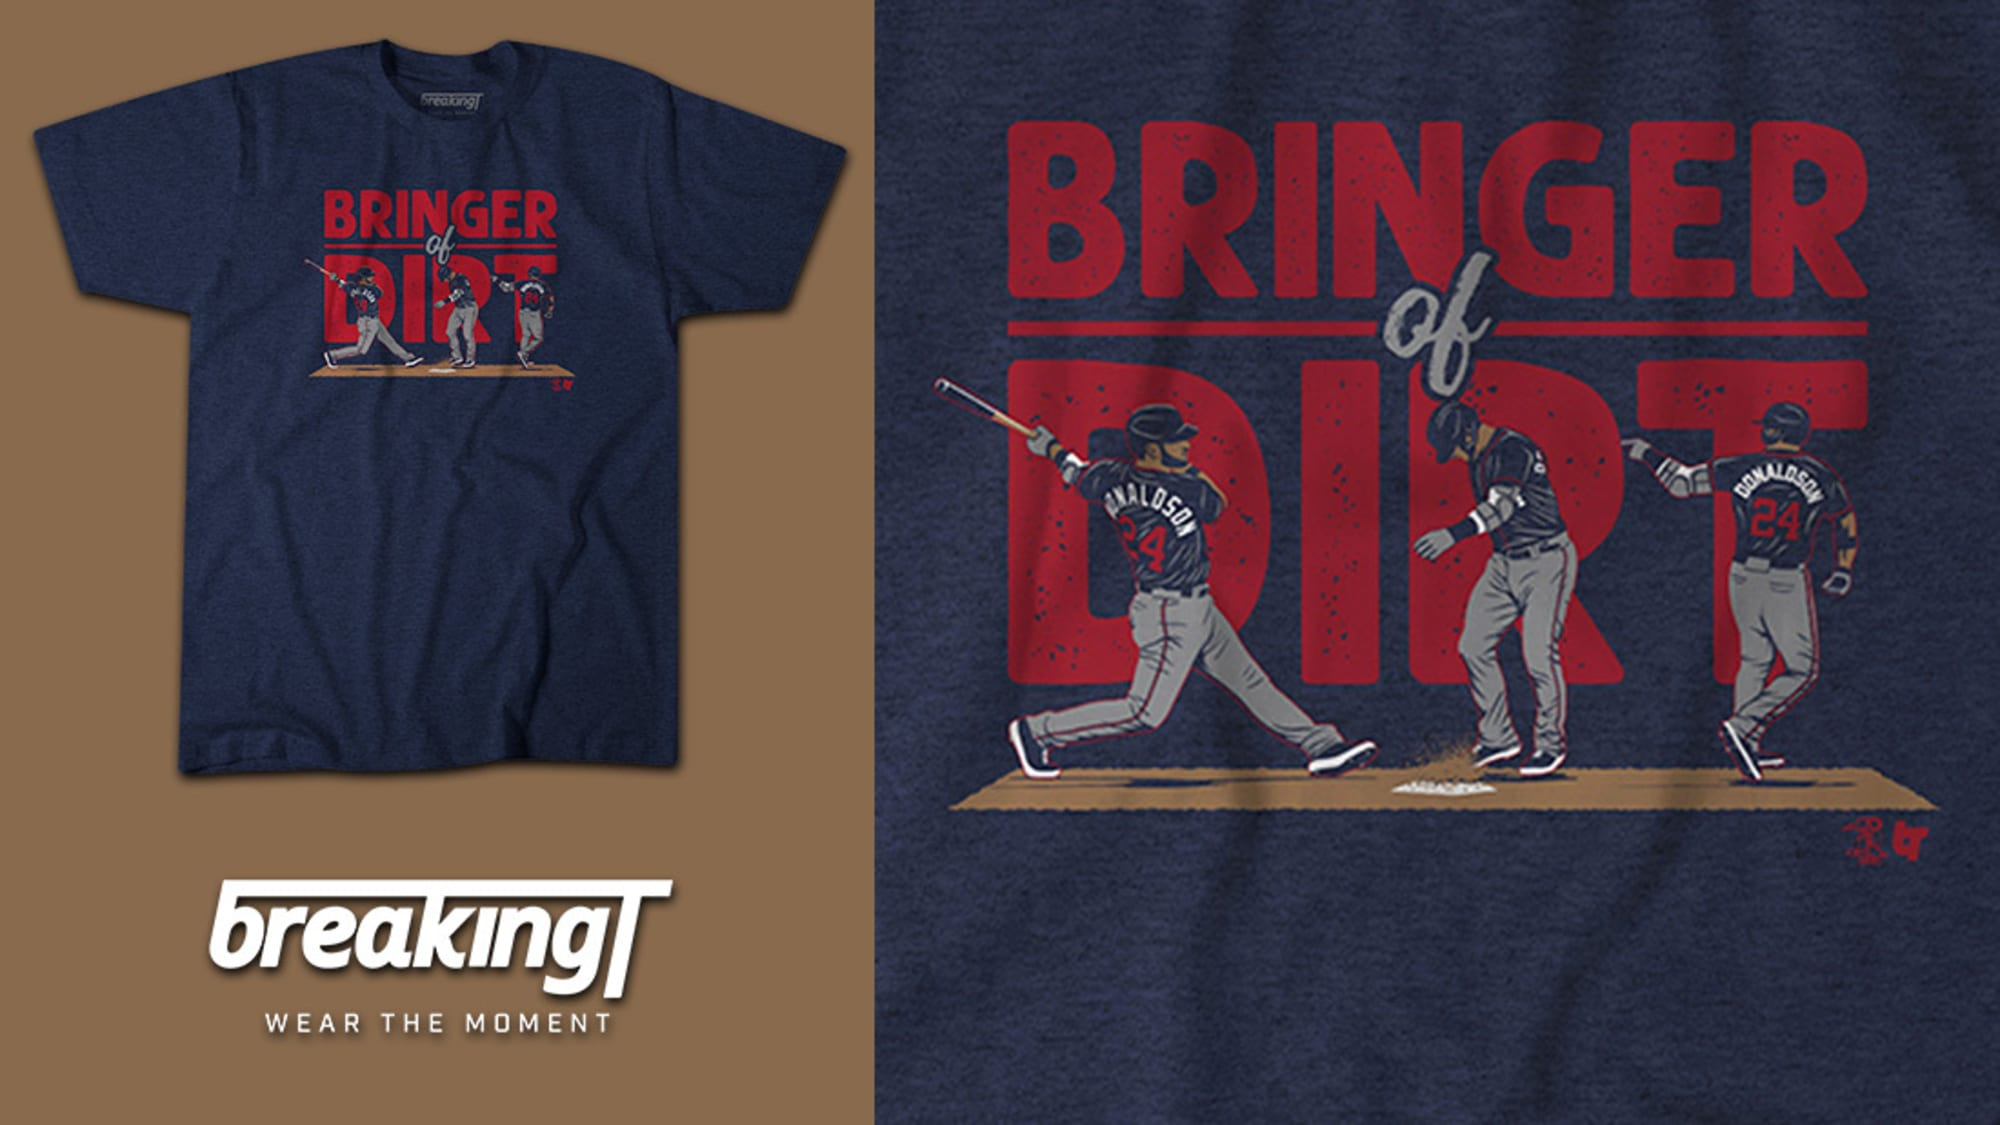 Minnesota Twins fans are going to love this 'Bringer Of Dirt' t-shirt